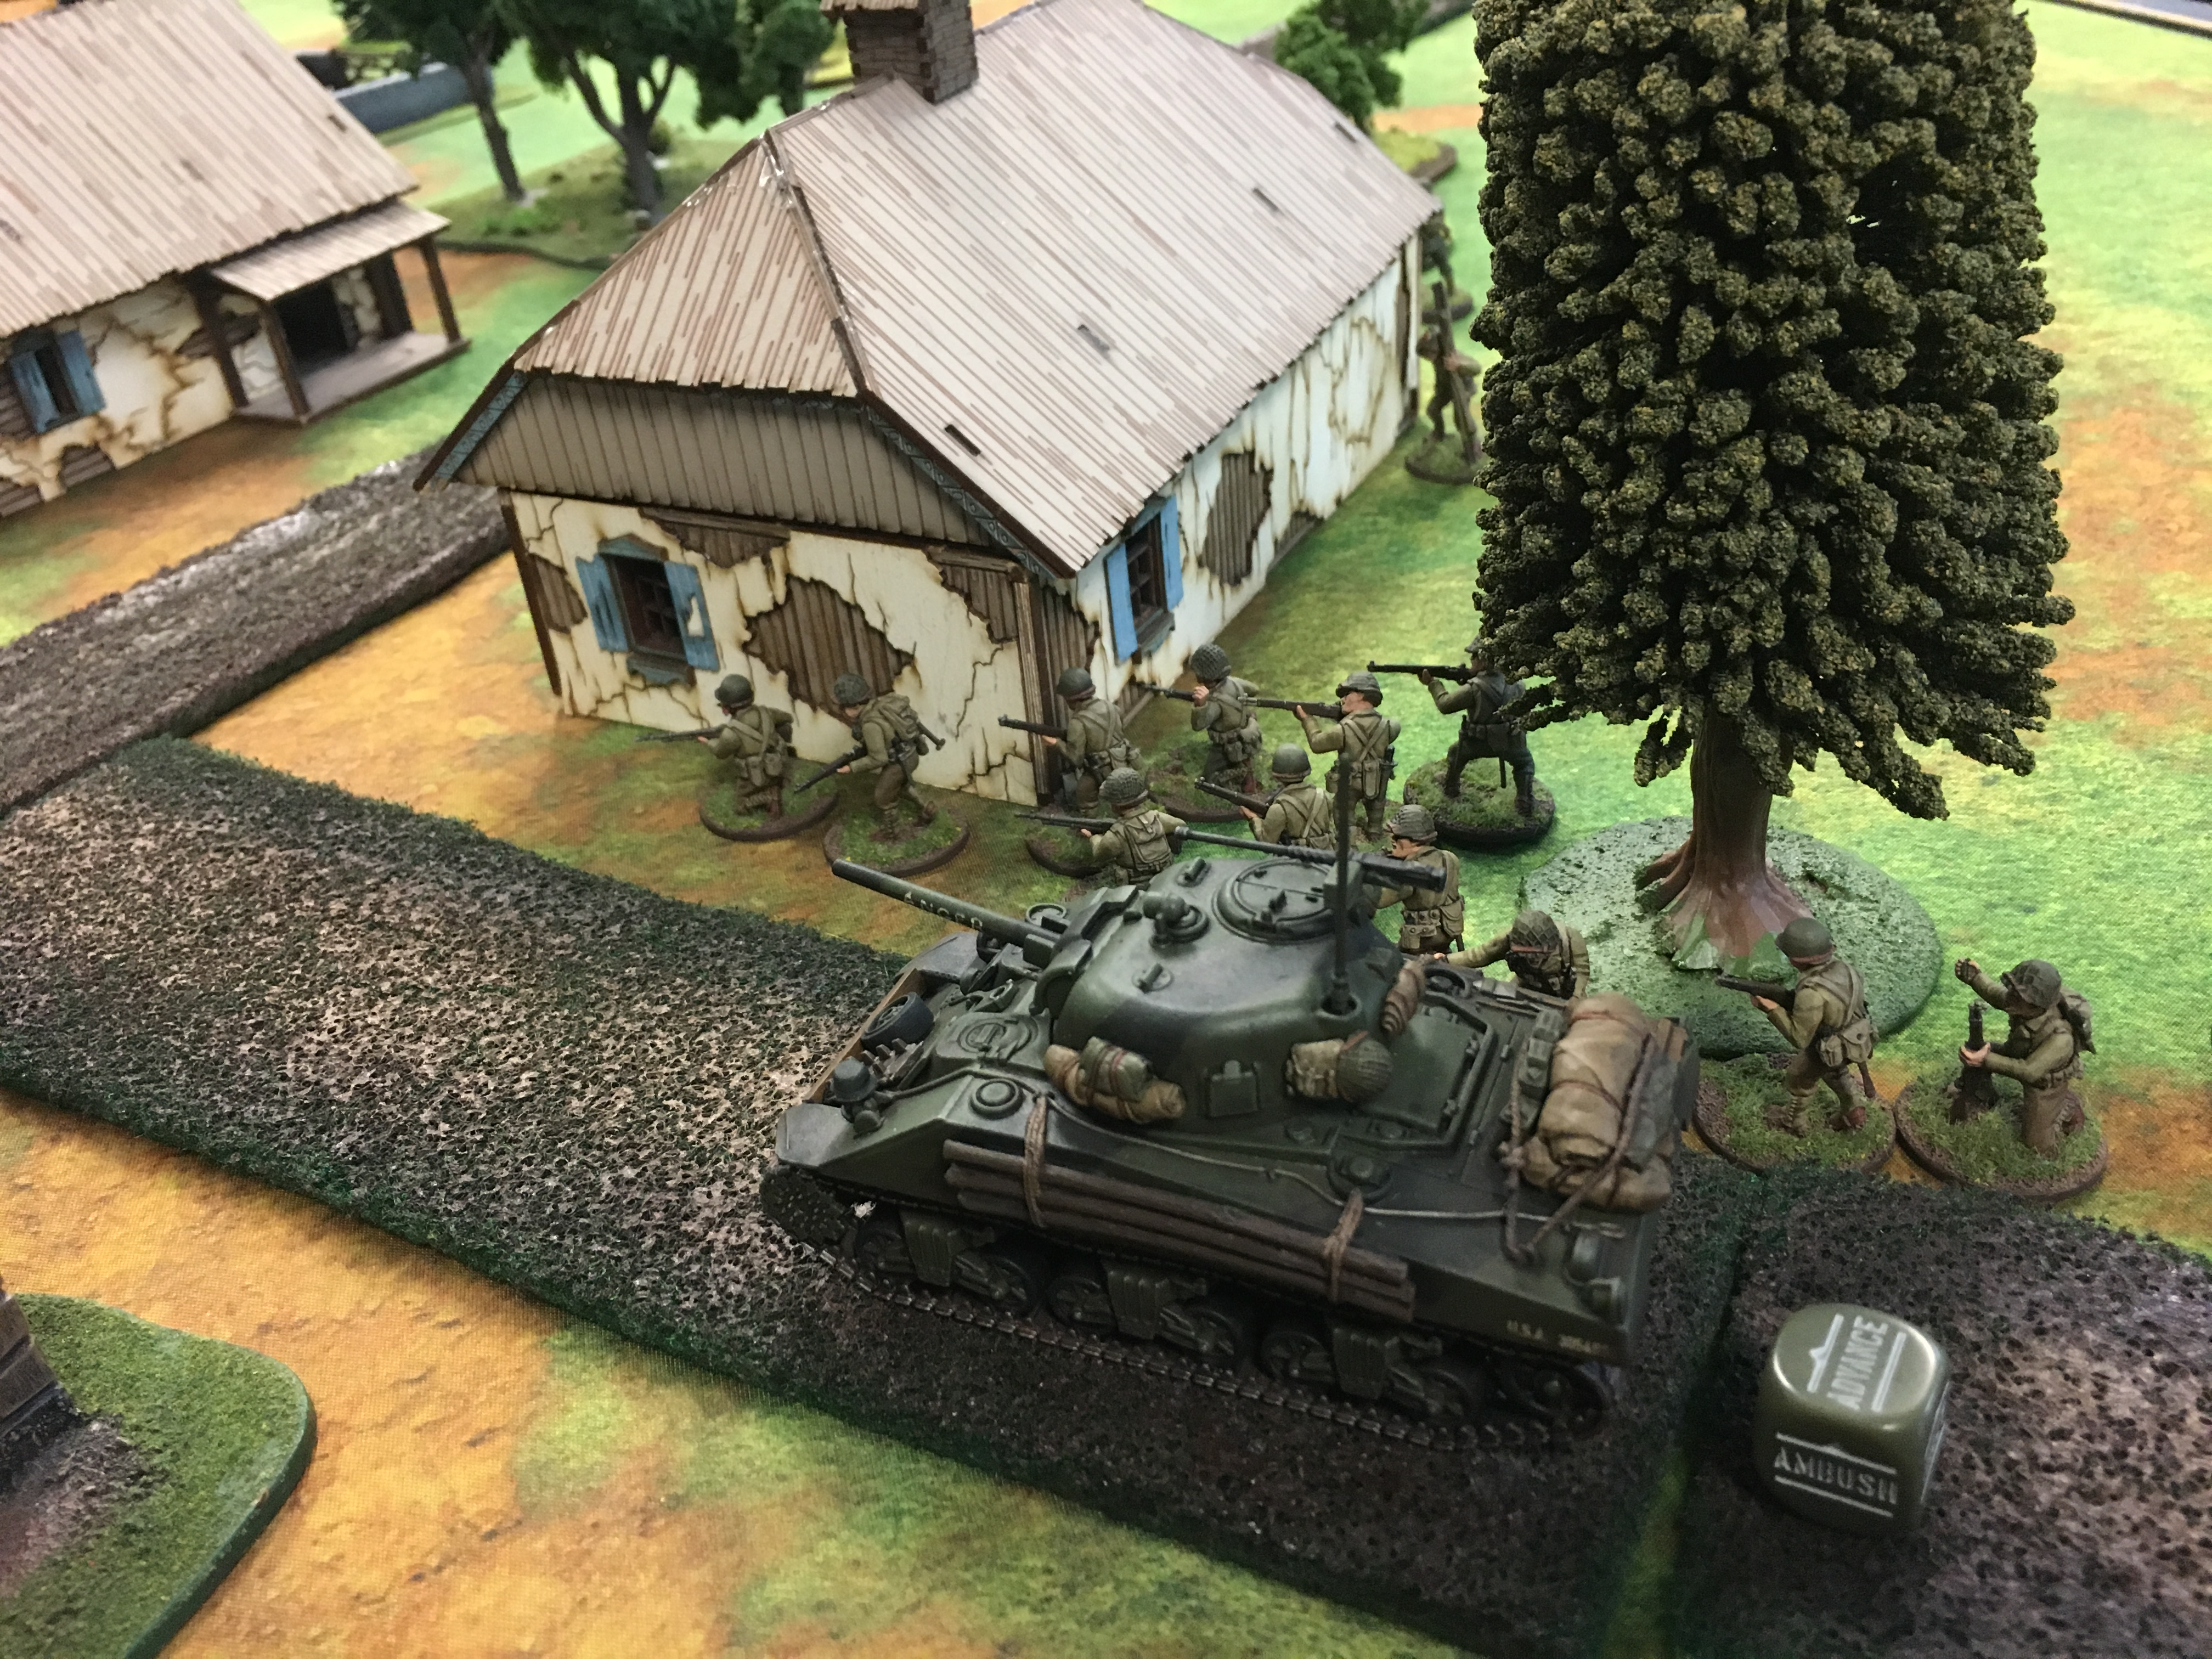 The Furious versus 2nd SS Panzer Division in a fierce infantry engagement